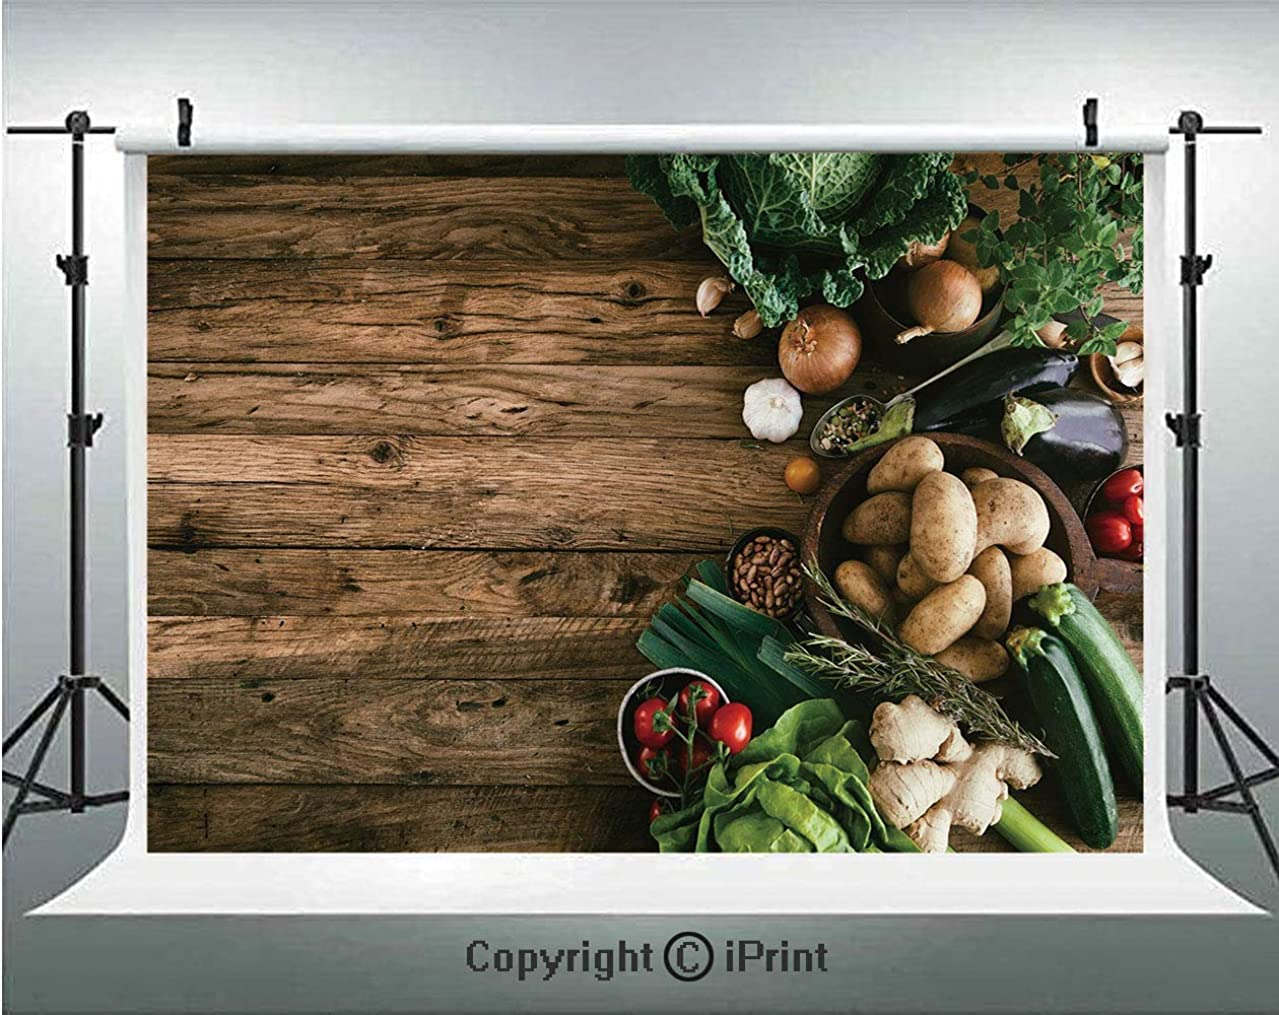 Harvest Photography Backdrops Various Vegetables on Rustic Wooden Table Onions Potatoes Zucchini Cherry Tomatoes Decorative,Birthday Party Background Customized Microfiber Photo Studio Props,10x6.5ft,